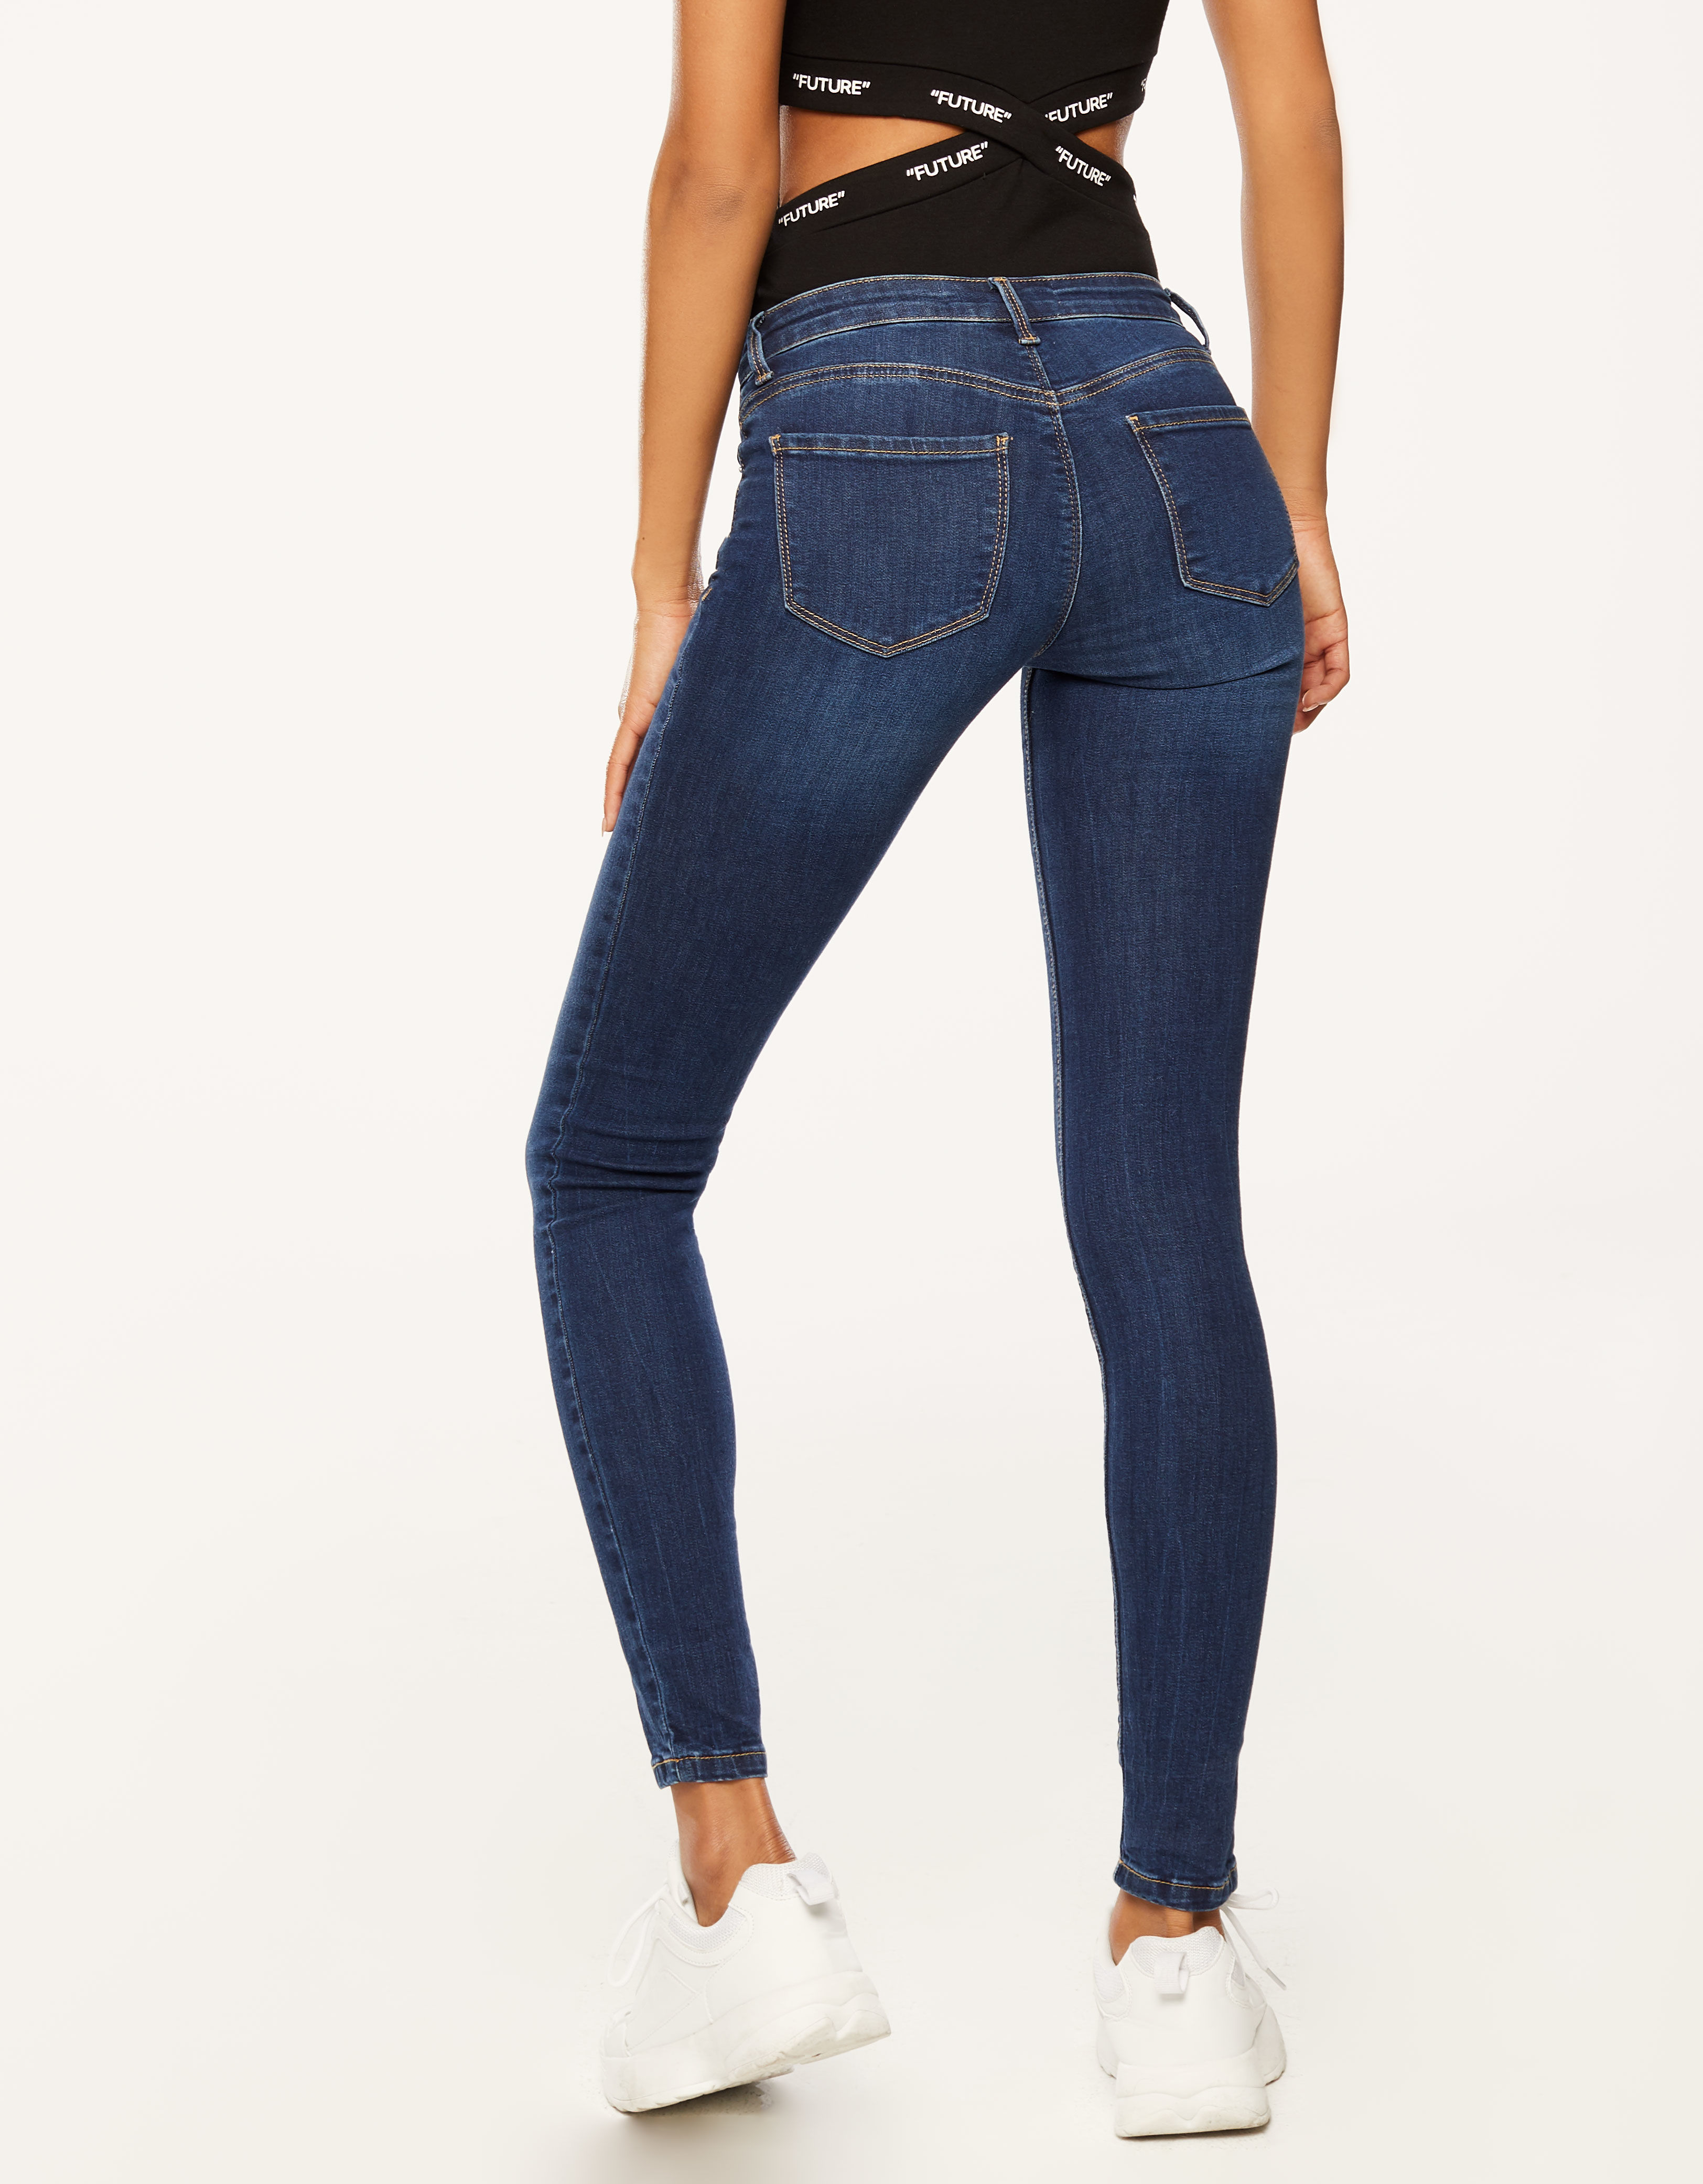 Tally Weijl - Low Waist Skinny Jeans - 3